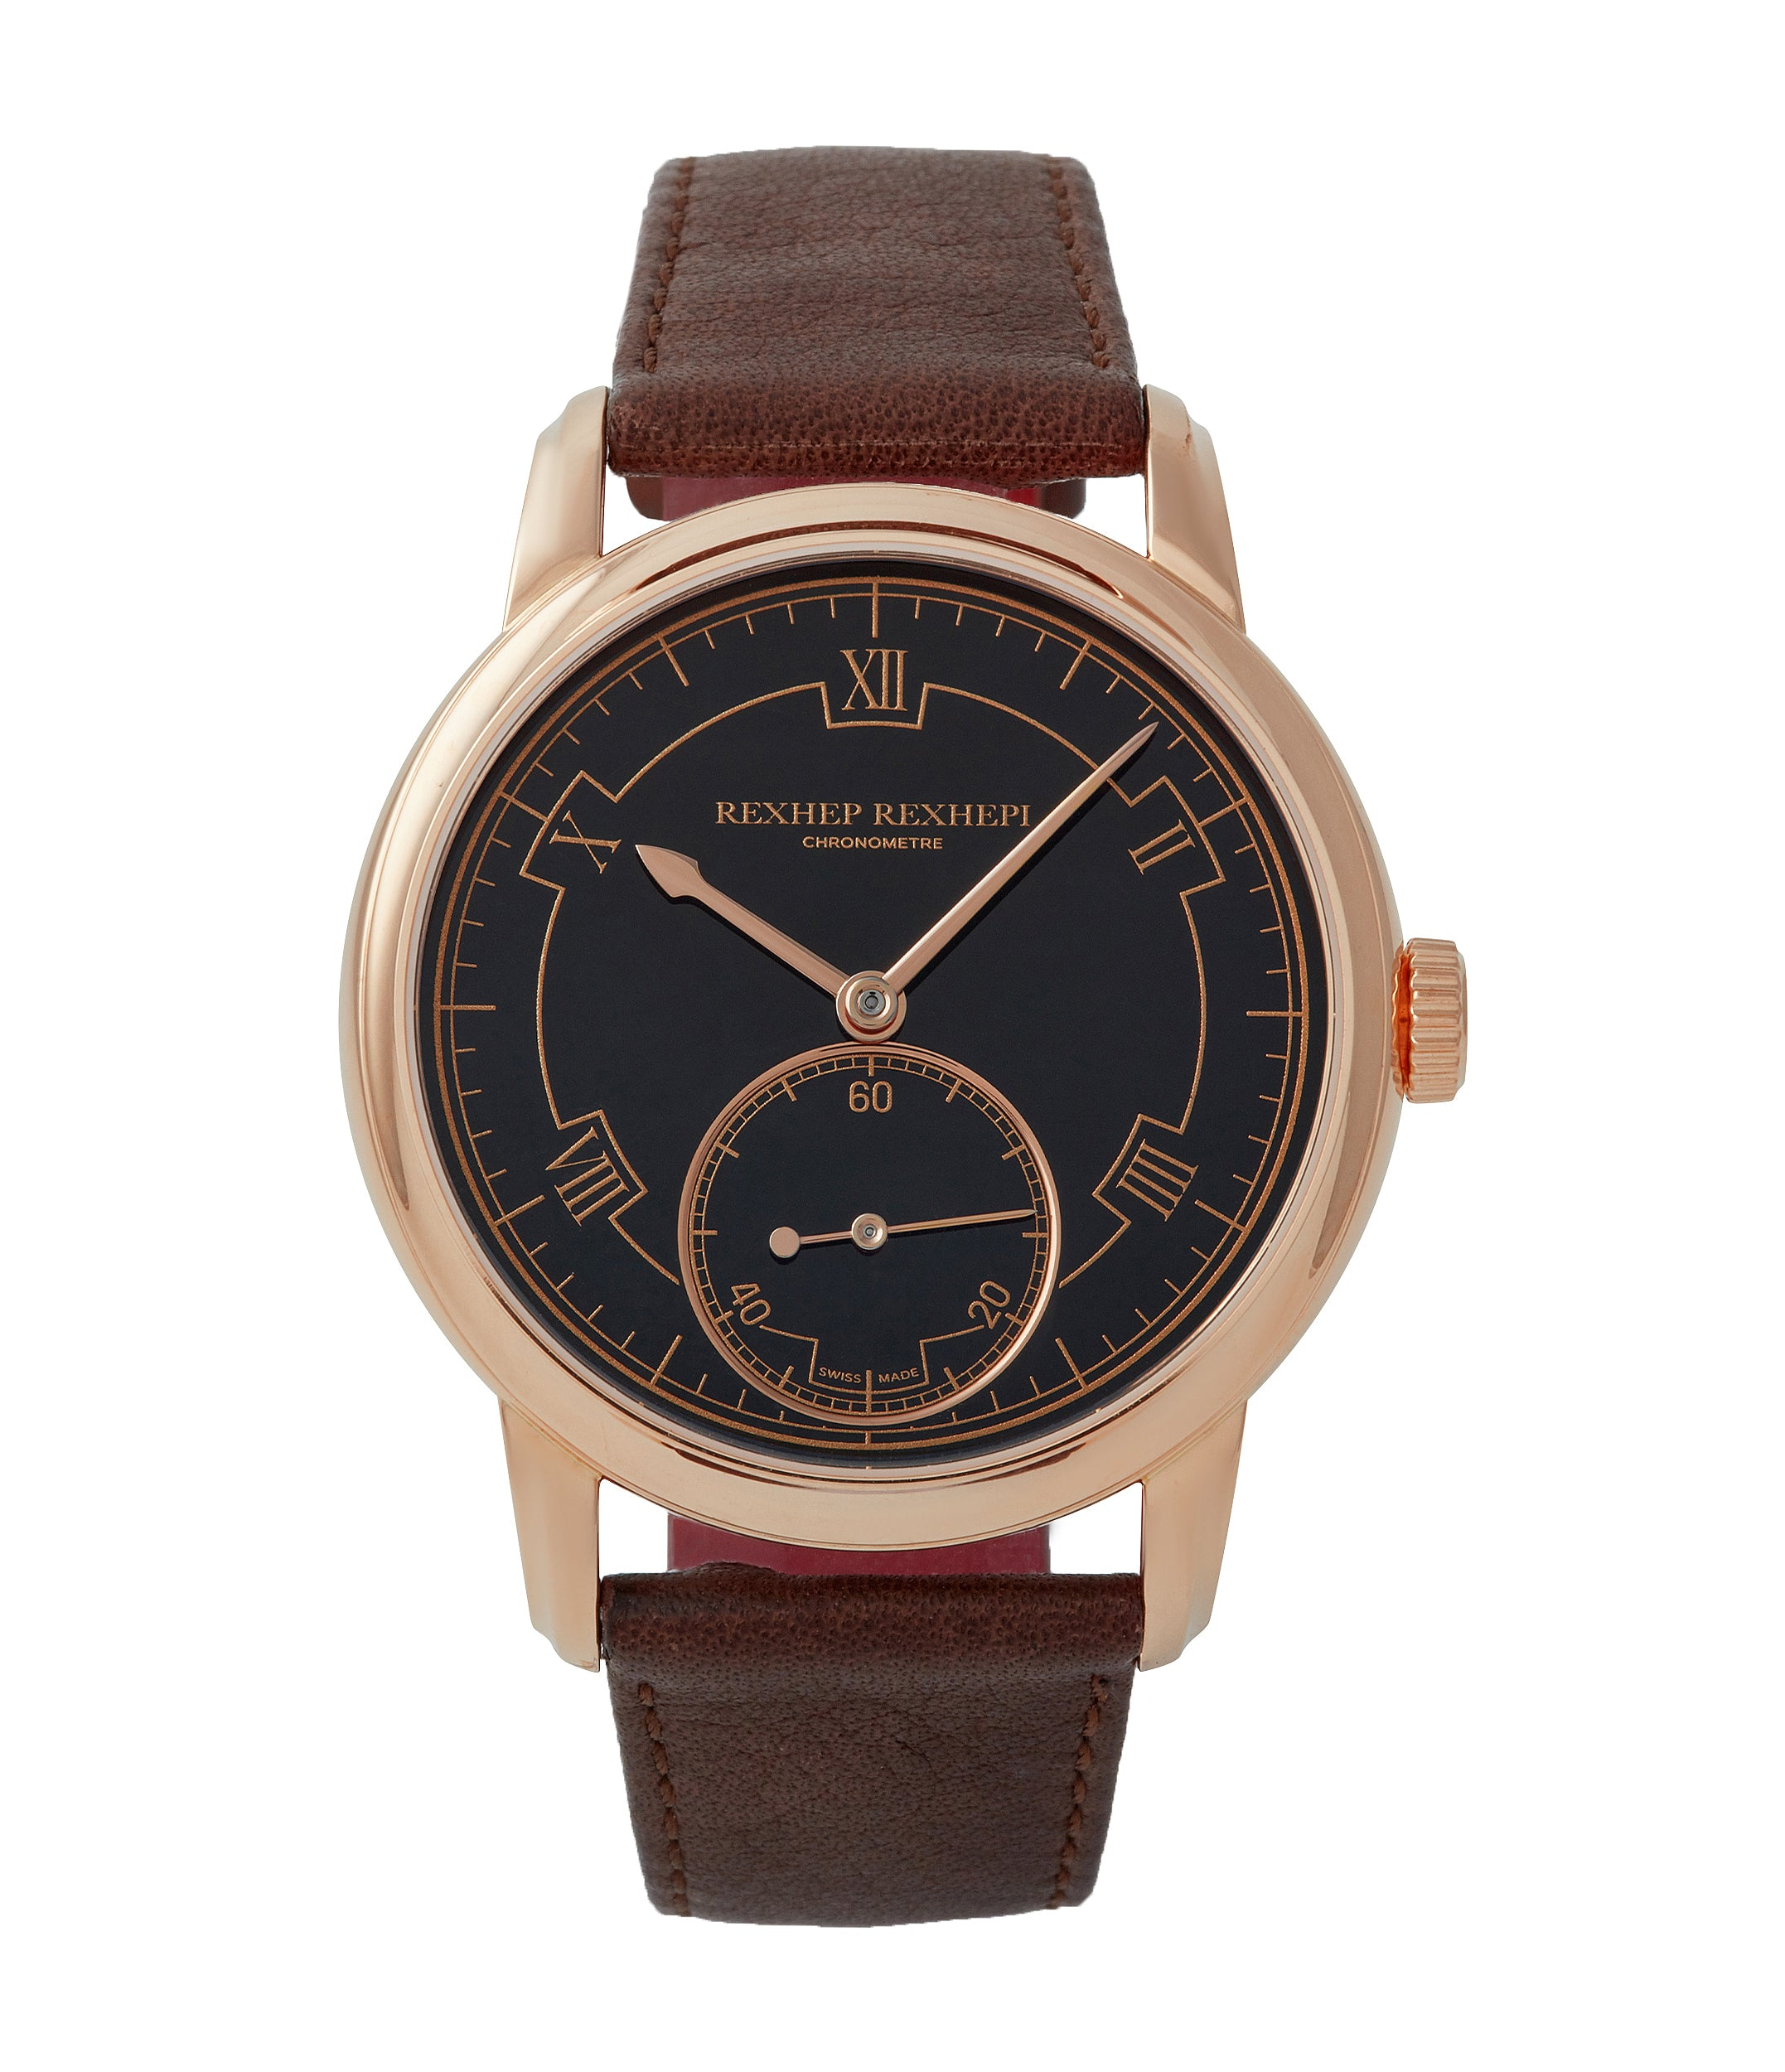 buy Rexhep Rexhepi Chronometre Contemporain AkriviA rose gold black enamel dial watch for sale online A Collected Man London UK specialist independent watchmakers